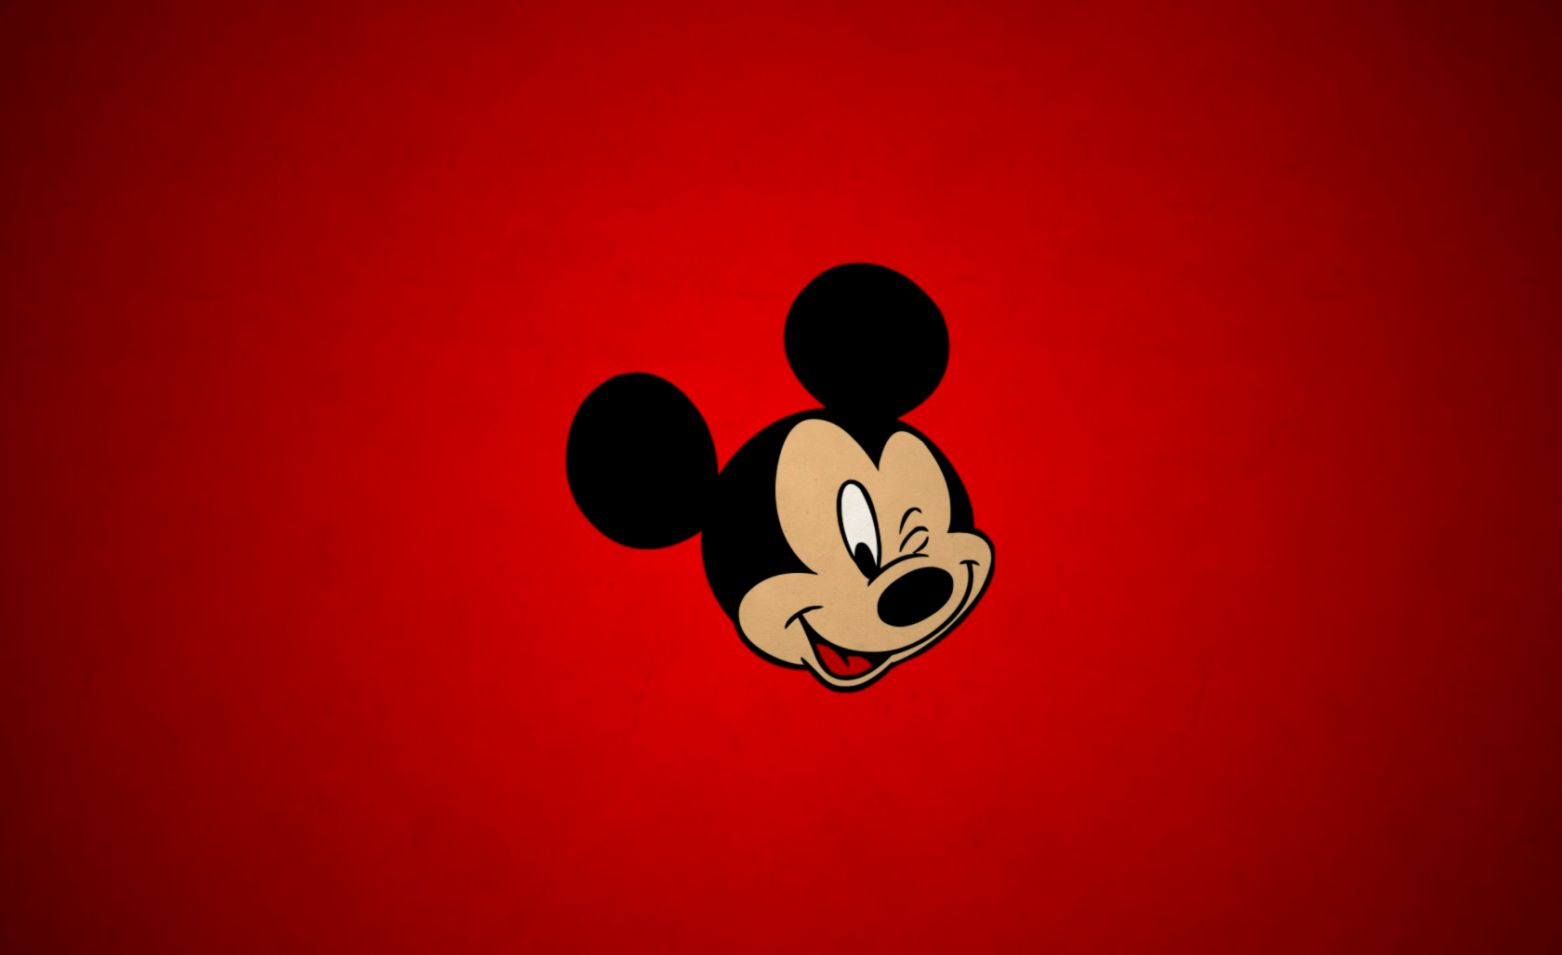 mickey mouse red hd | wallpaper background hd